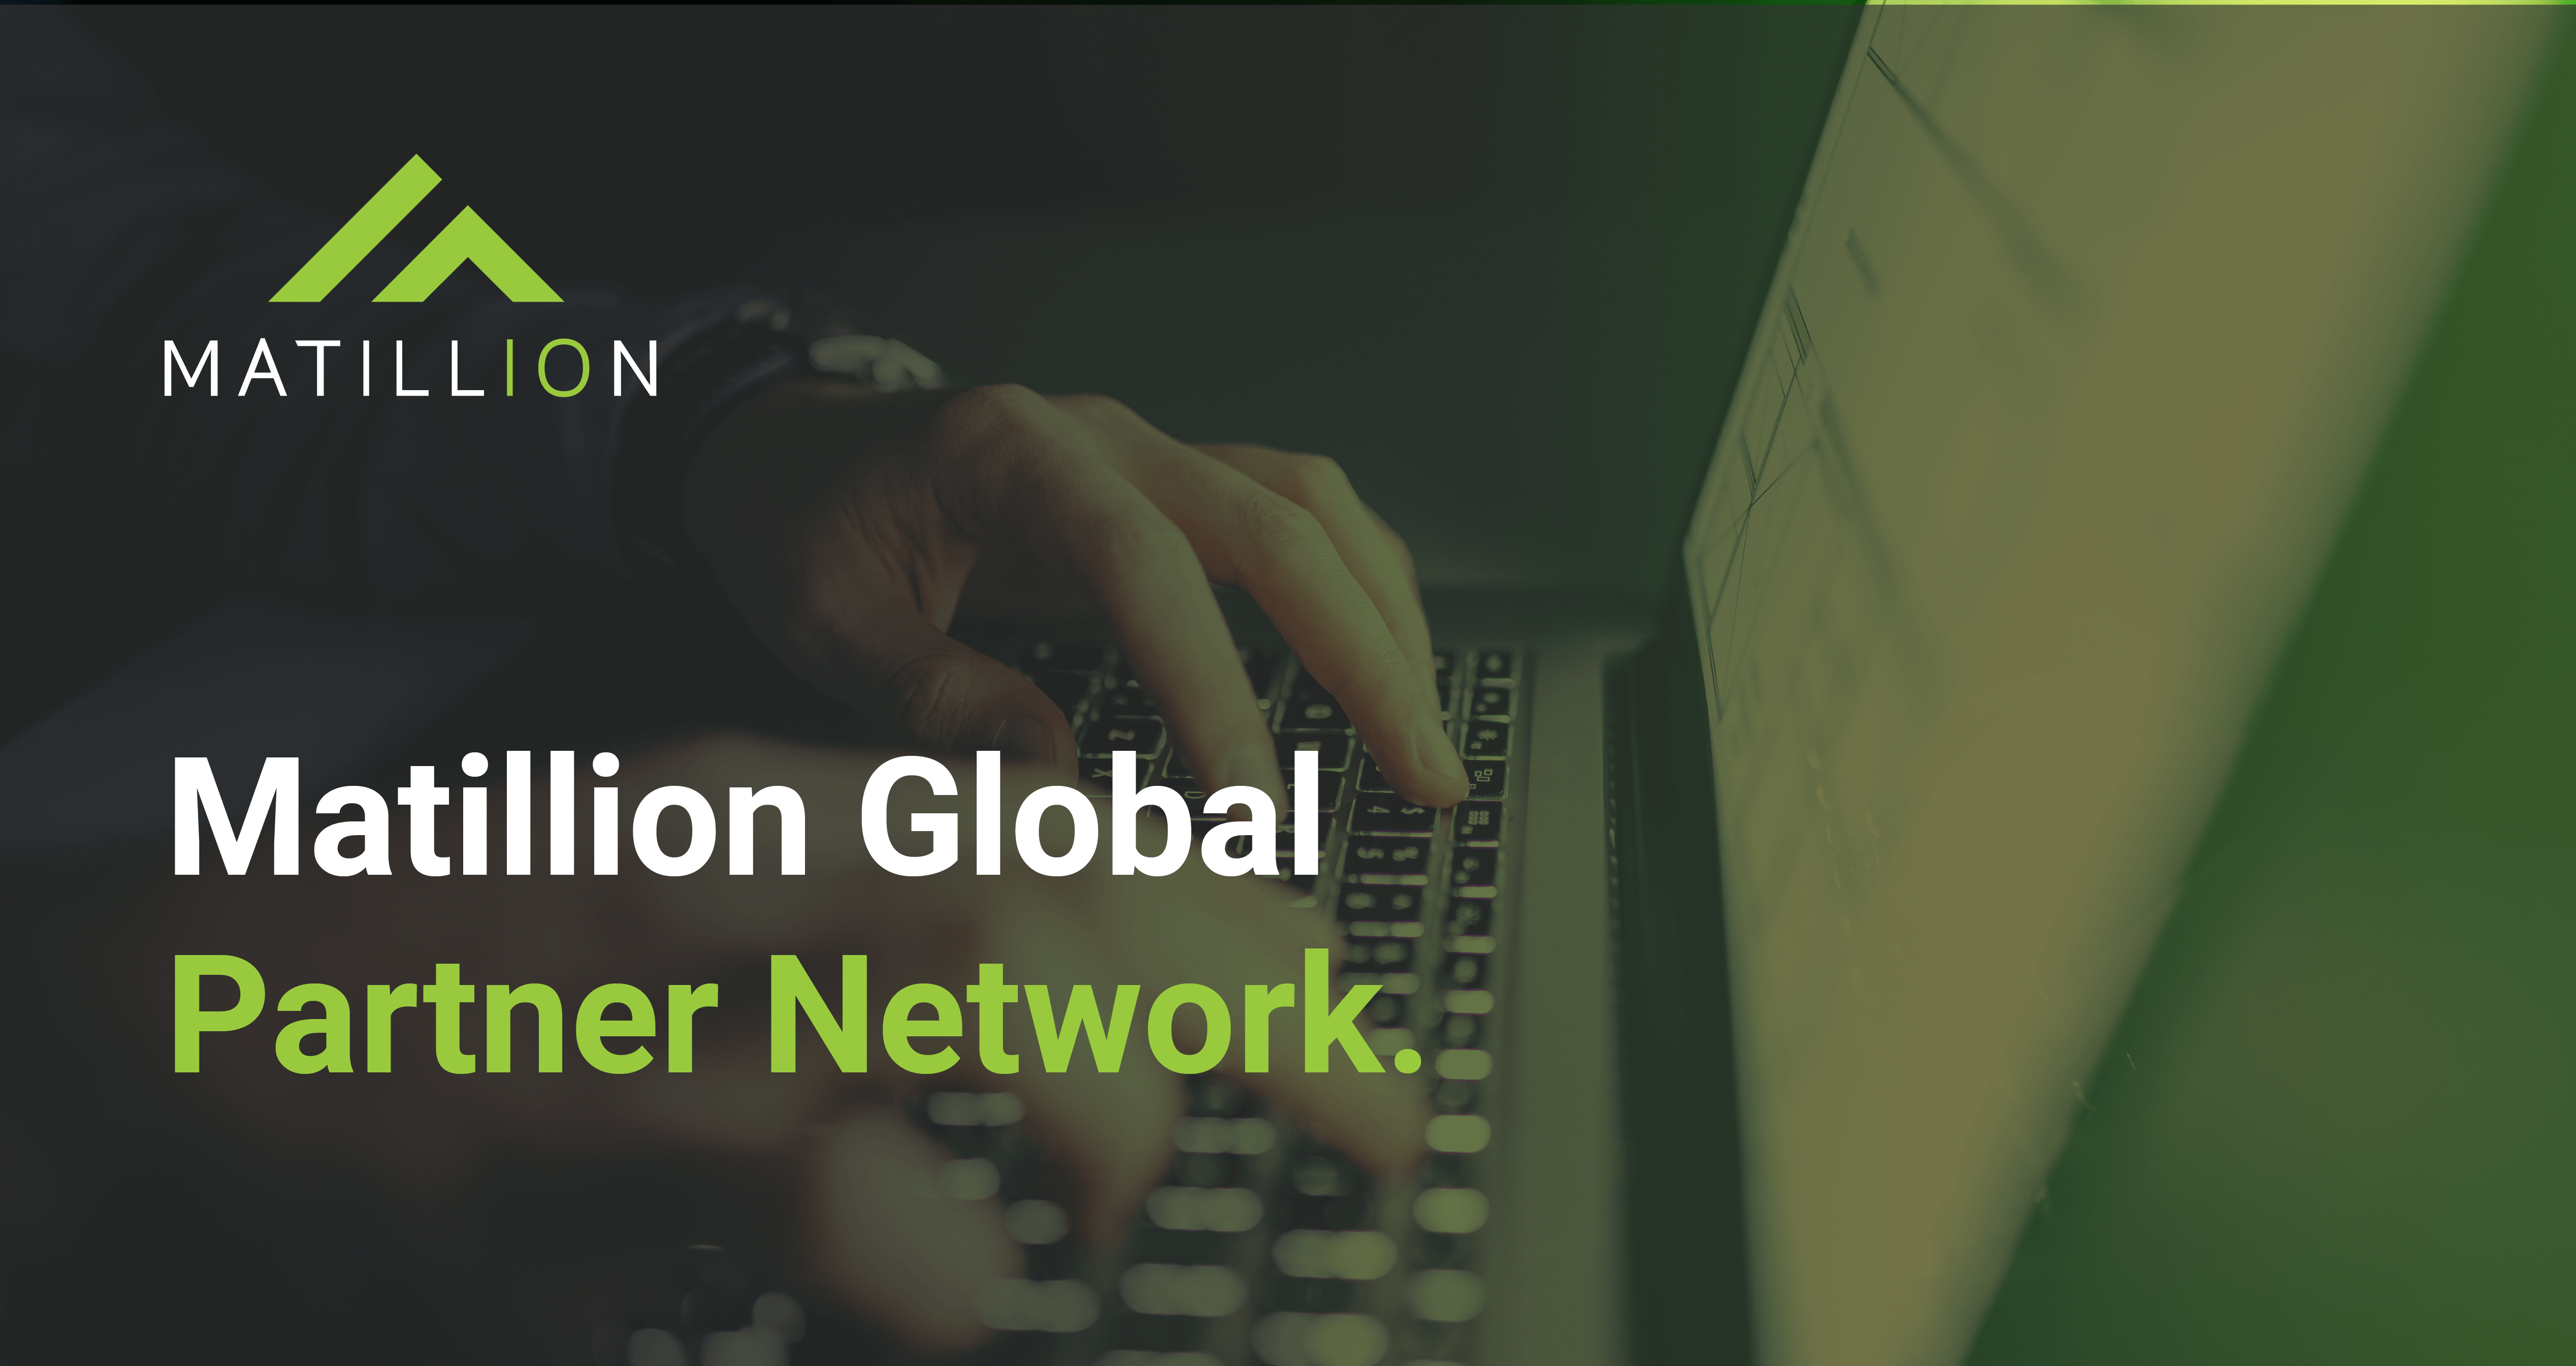 this is the latest matillion global partner network image